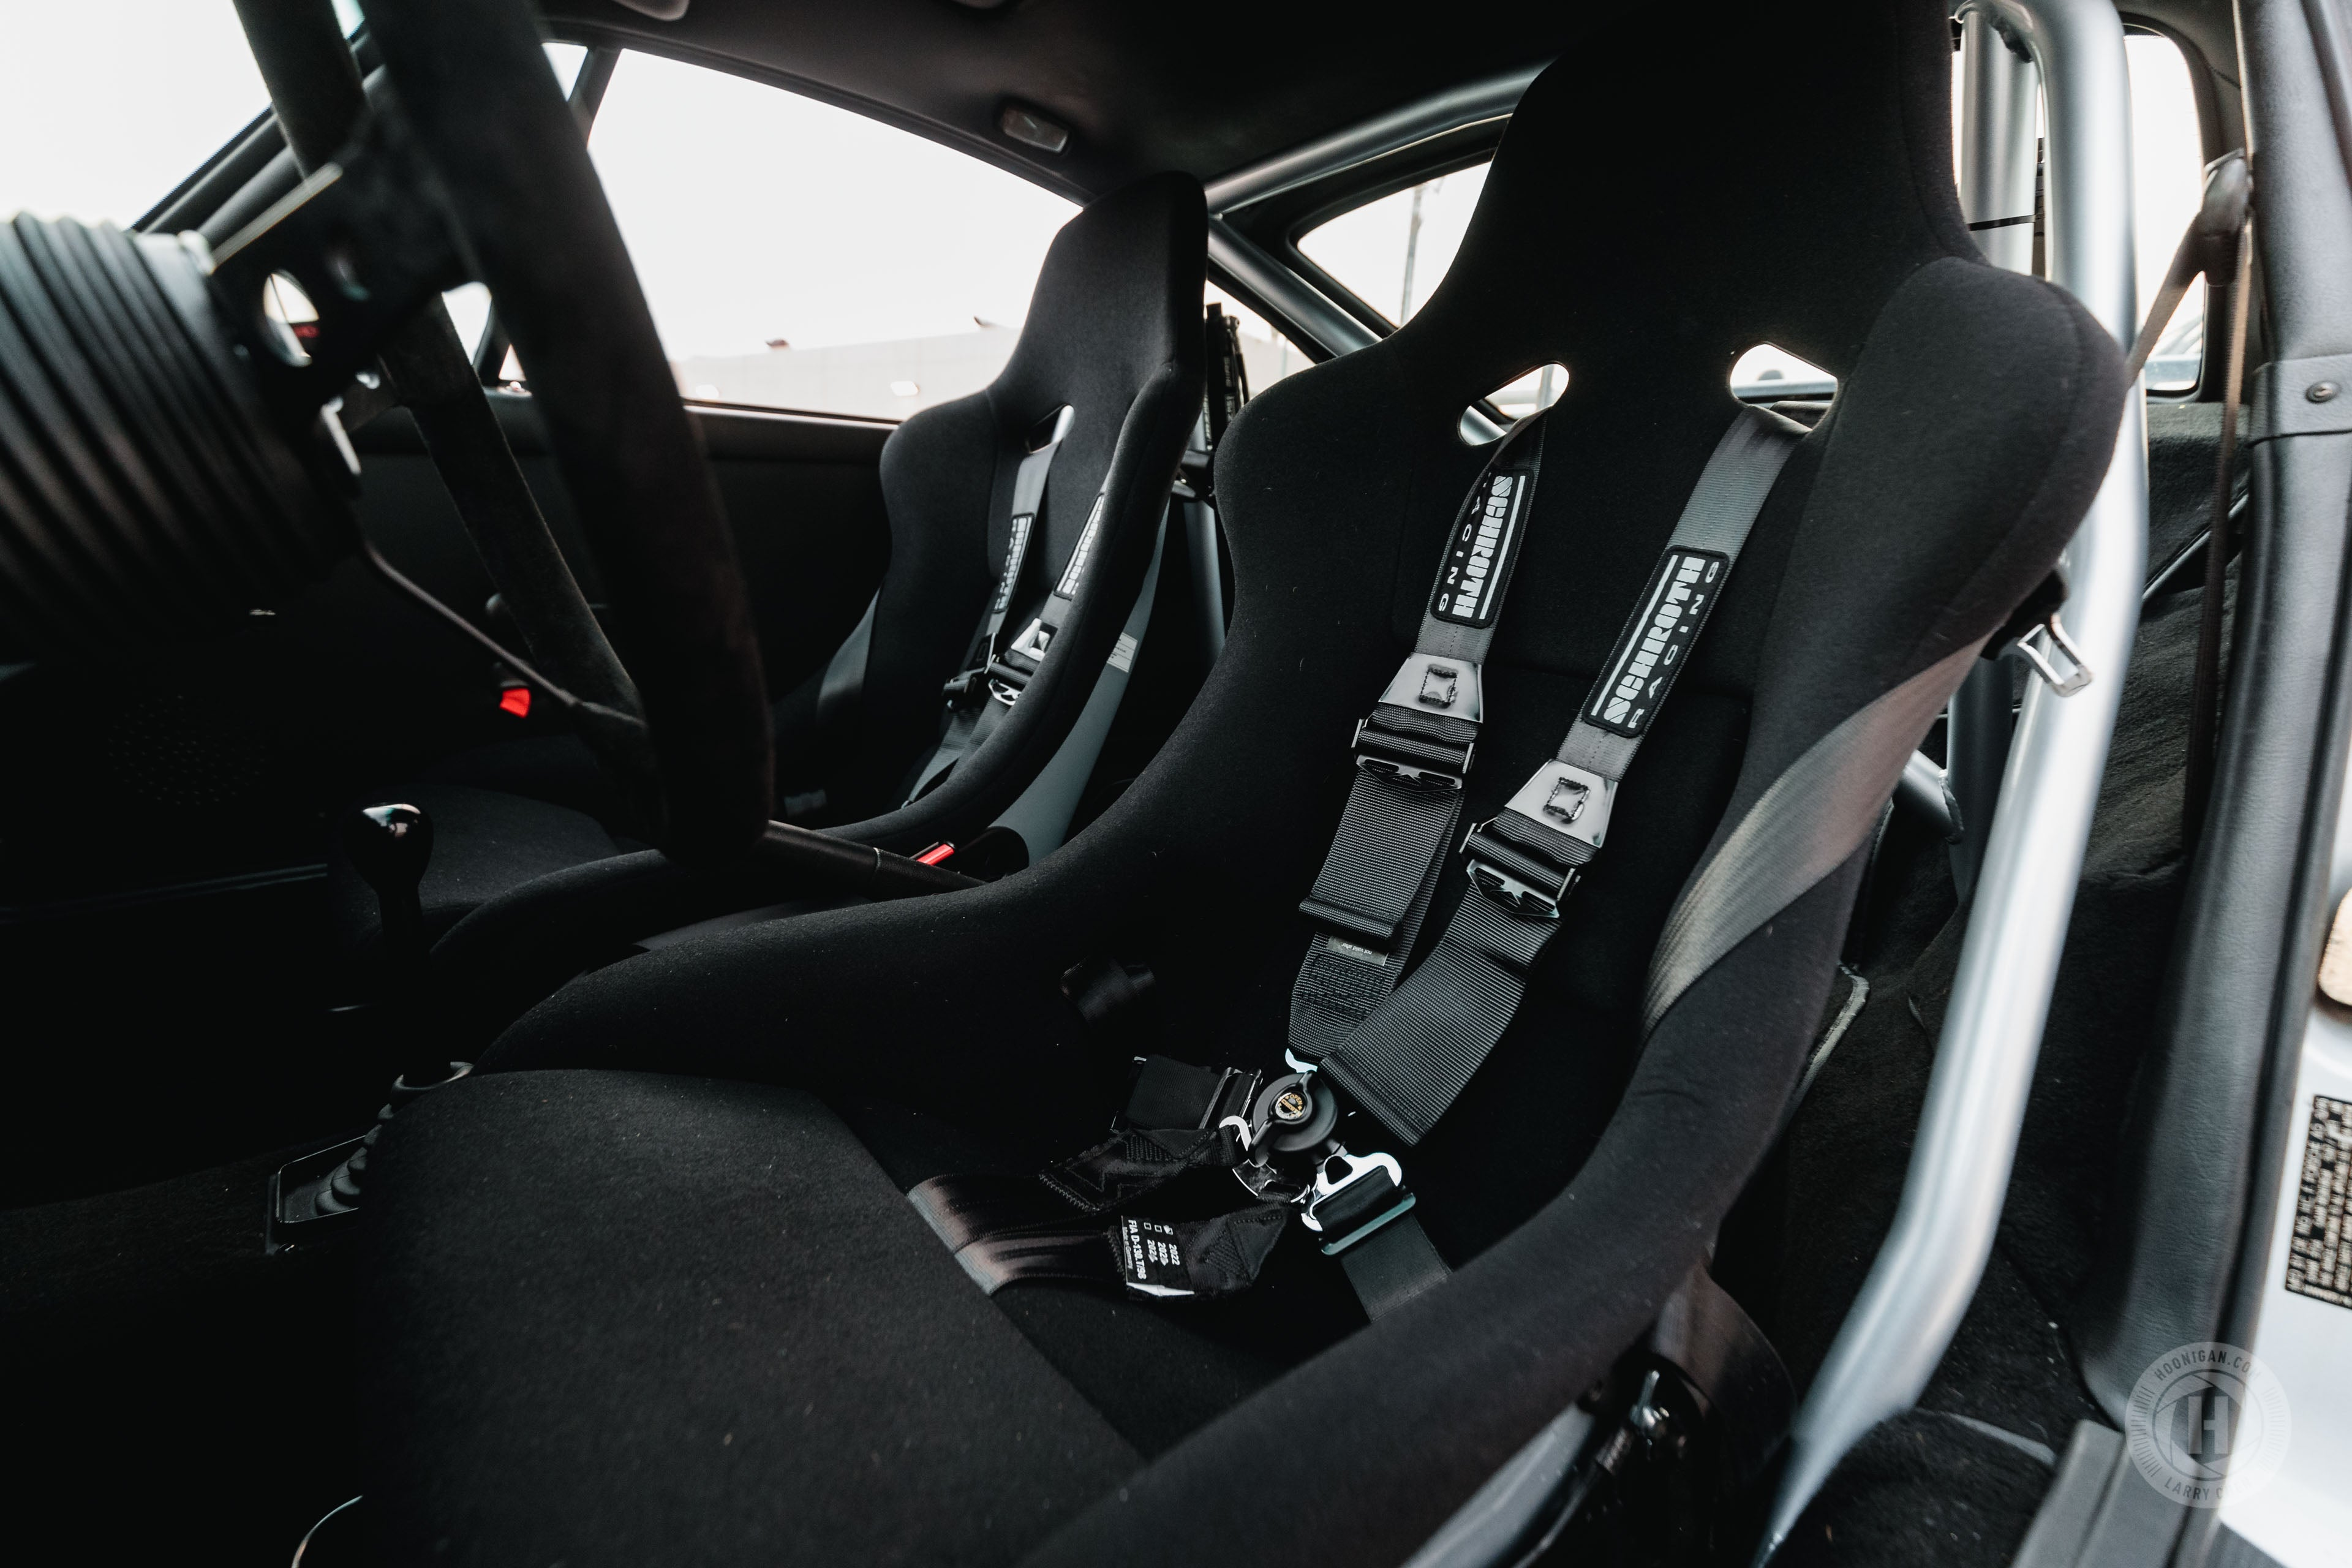 A Modern Classic: The 311RS 993 CupSport - Hoonigan